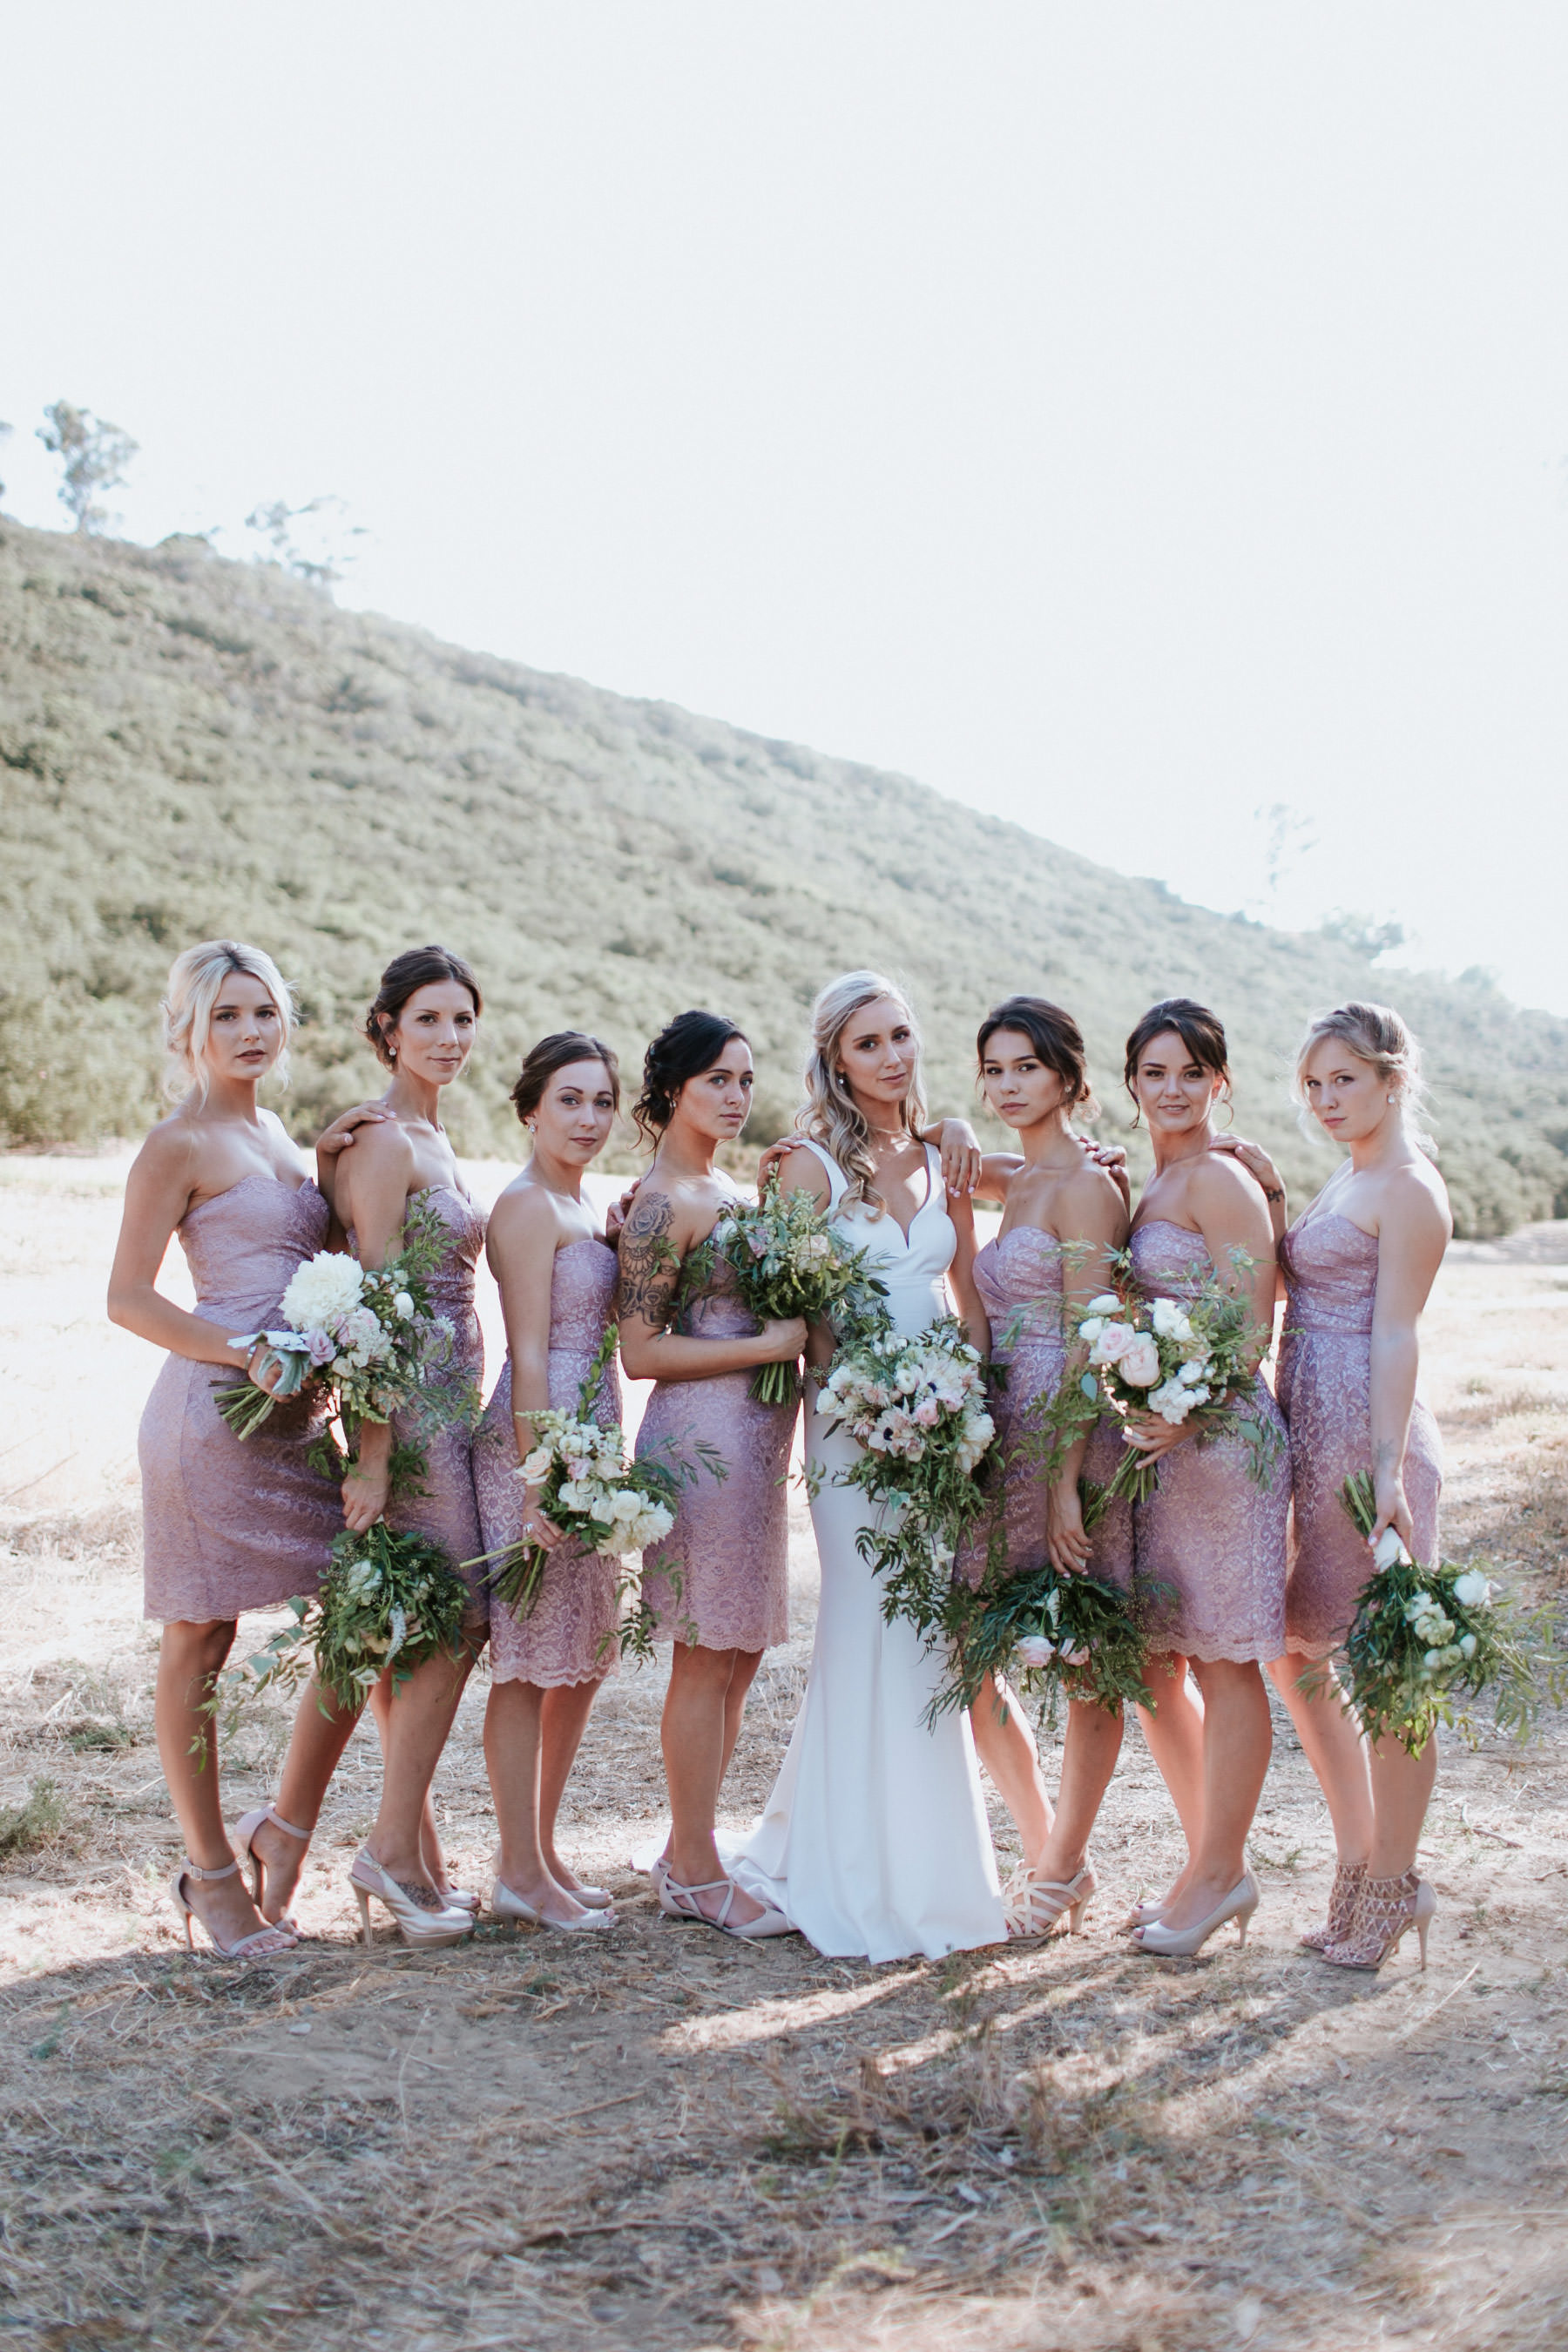 Modern bride with bridesmaids in metallic pink champagne dresses